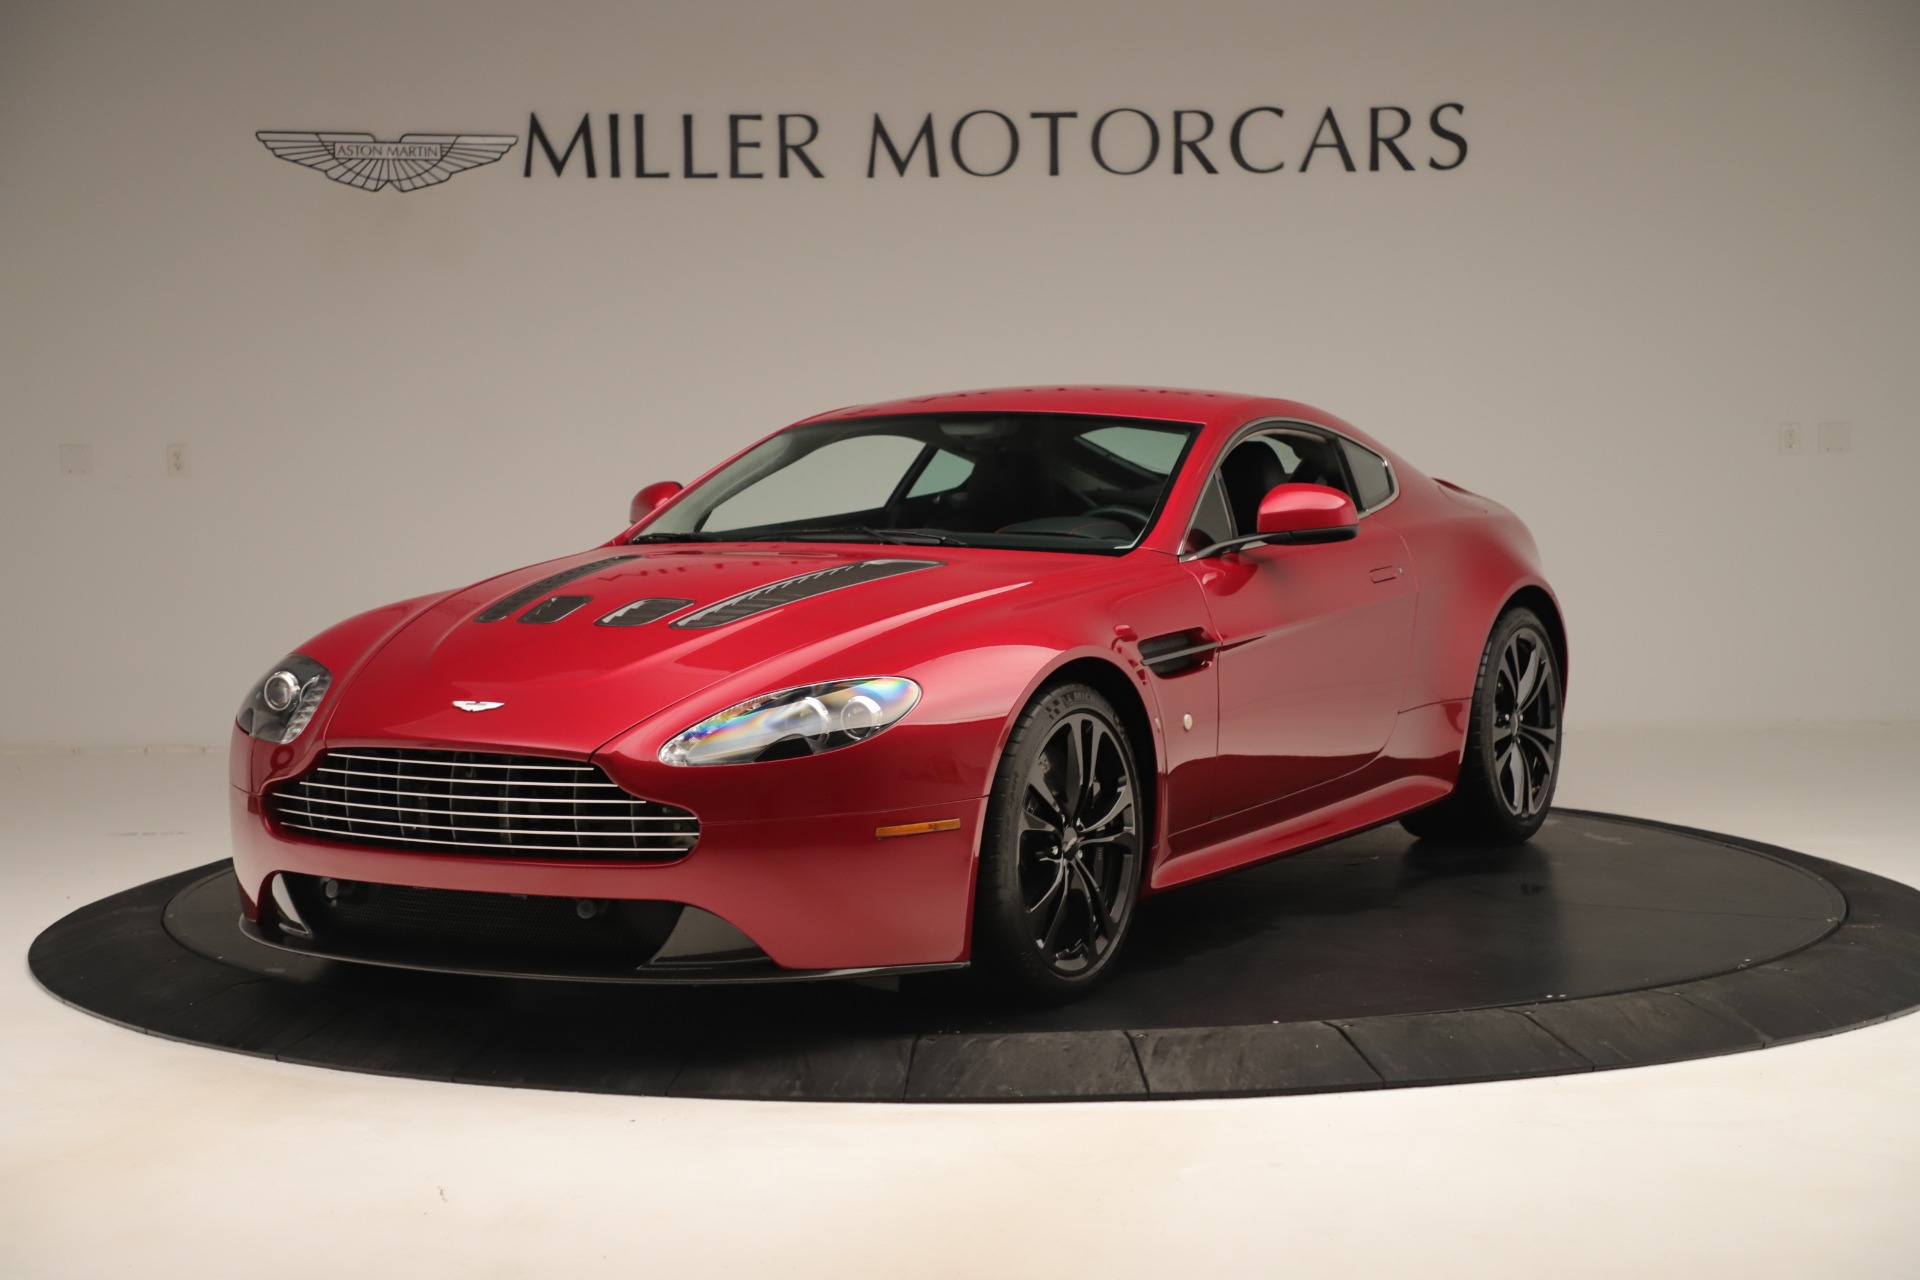 Used 2011 Aston Martin V12 Vantage Coupe for sale Sold at Aston Martin of Greenwich in Greenwich CT 06830 1